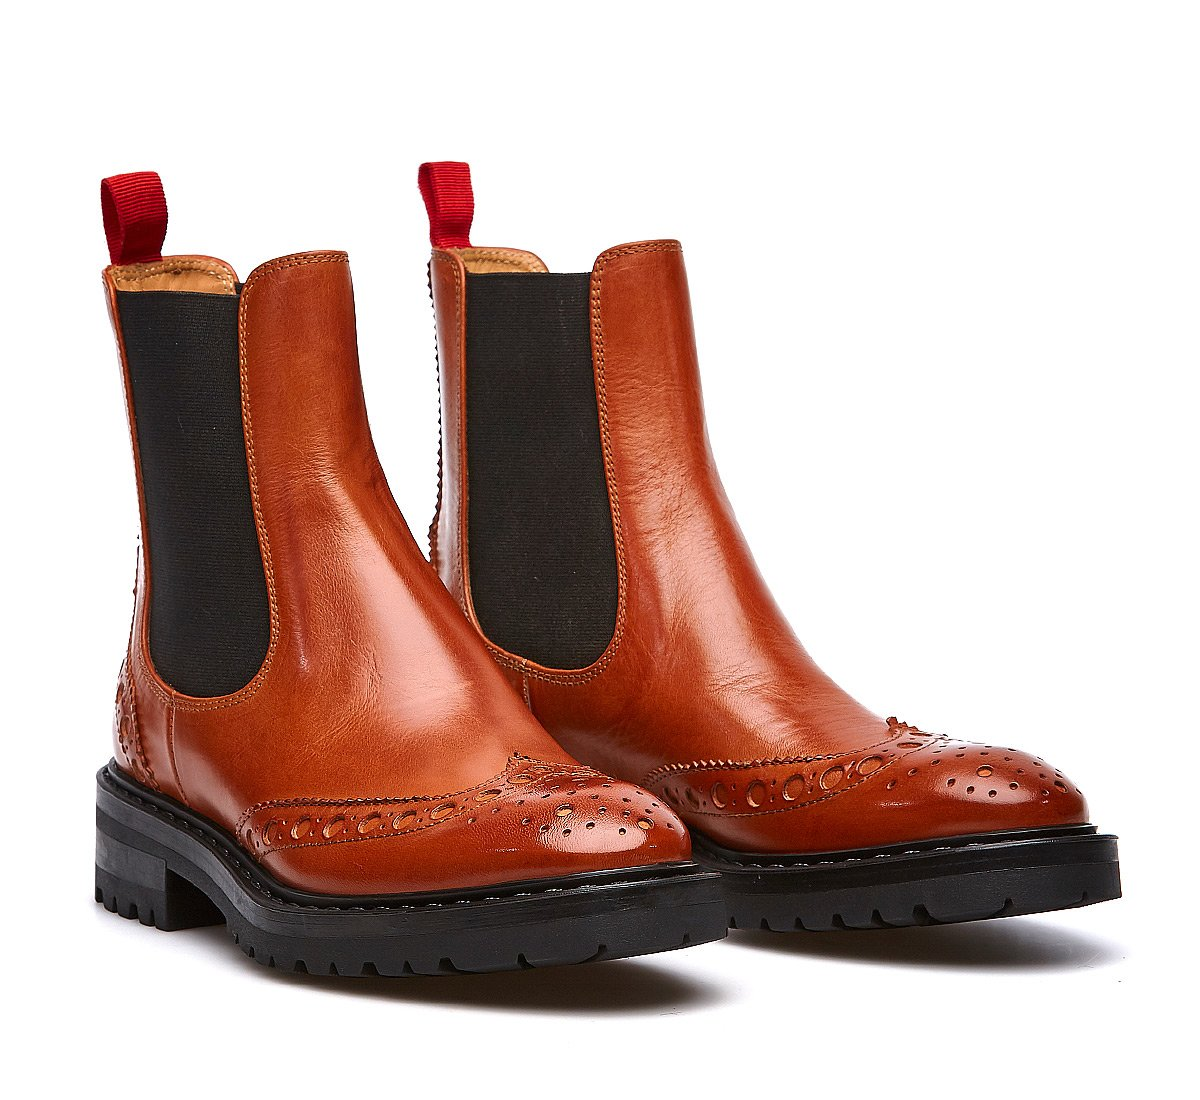 Barracuda Beatle Boots